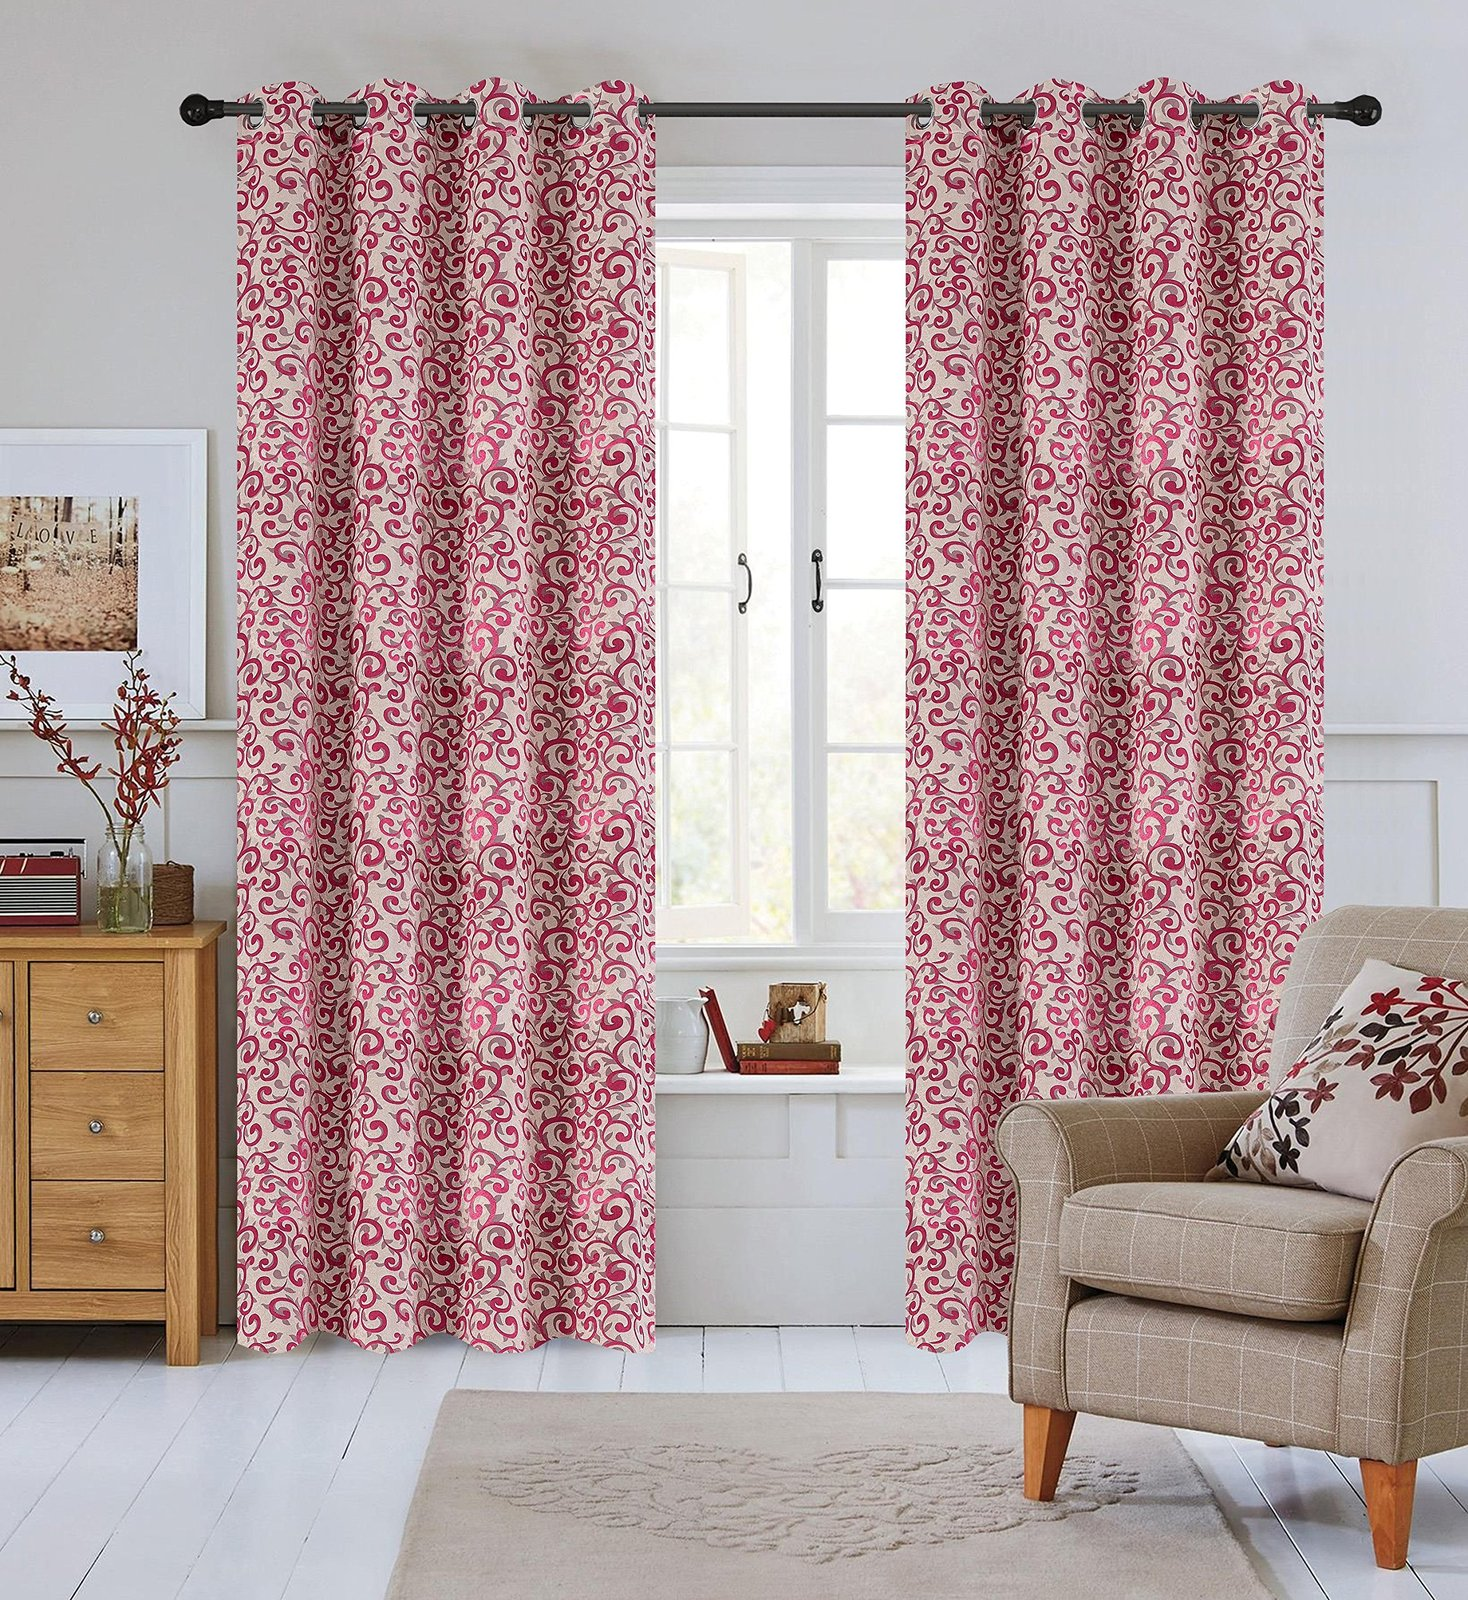 Urbanest 50-inch by 84-inch Set of 2 Jacquard Scroll Drapery Curtain Panel with  image 3